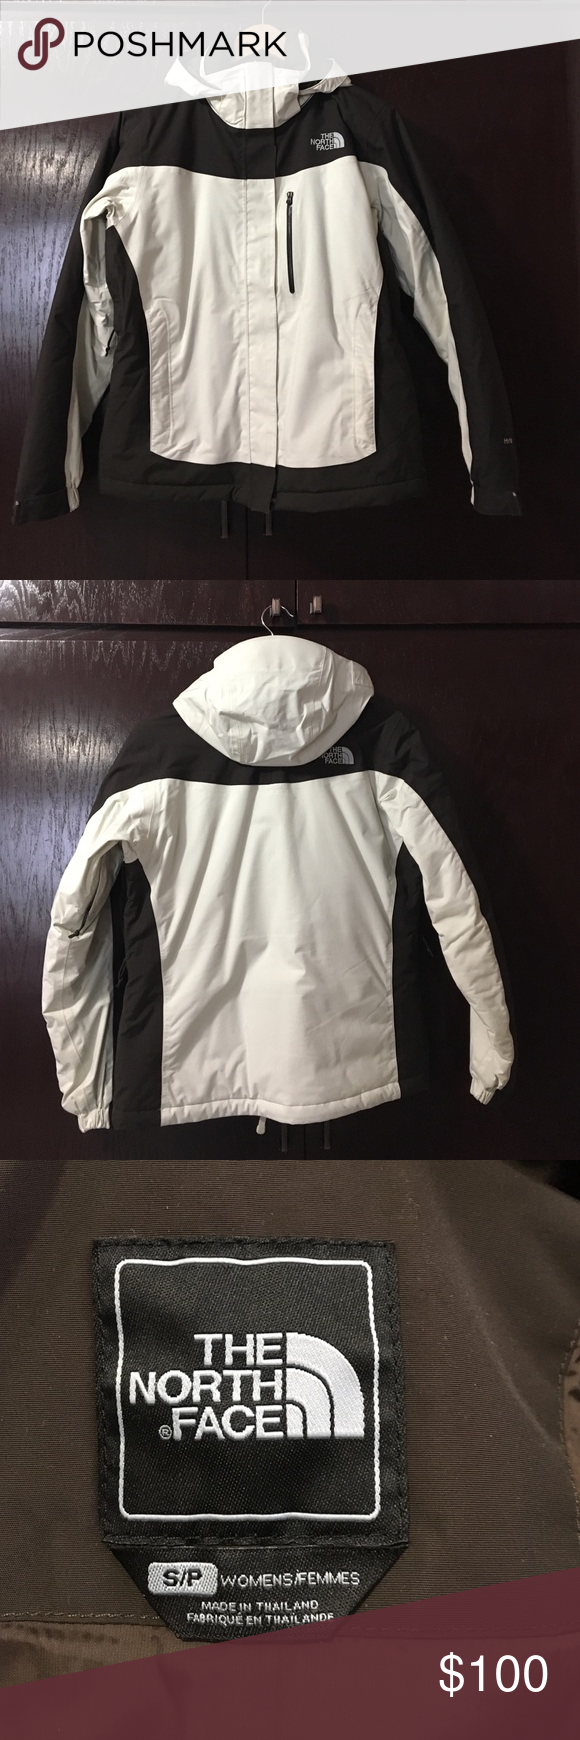 The North Face Jacket Ladies Small North Face Jacket Womens North Face Jacket Jackets For Women [ 1740 x 580 Pixel ]